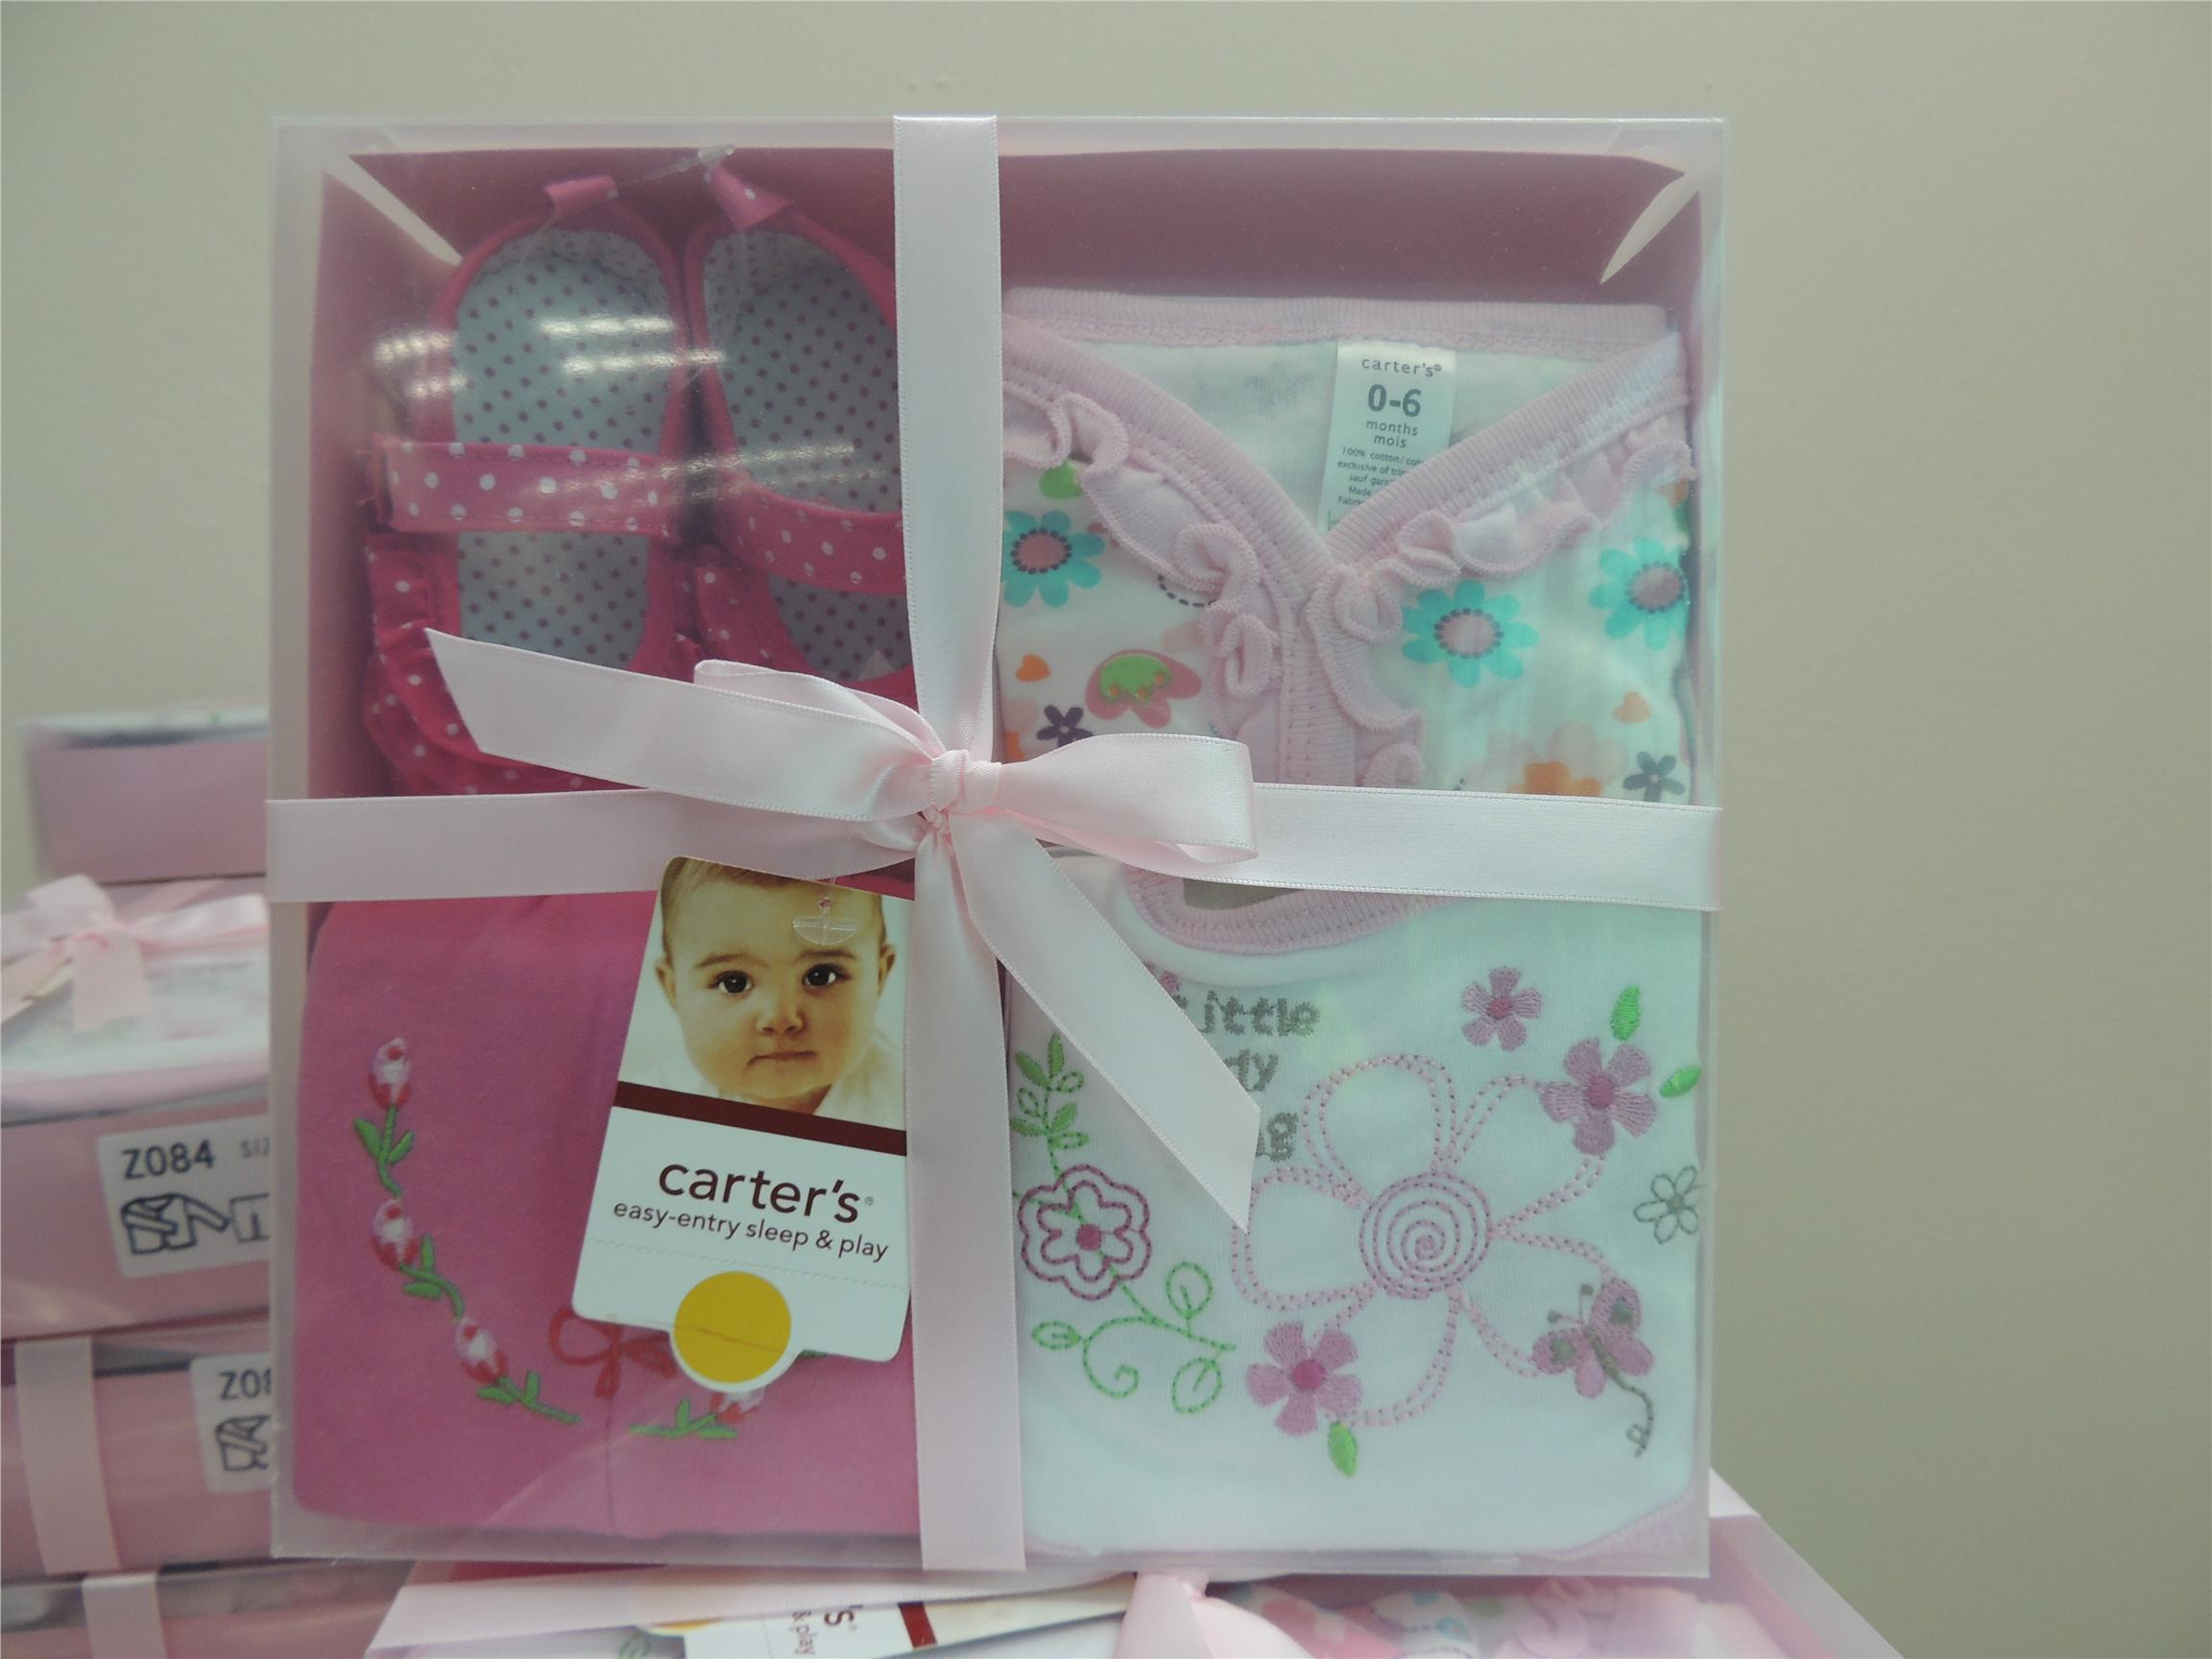 NEW BORN BABY 4PCS GIFT SET